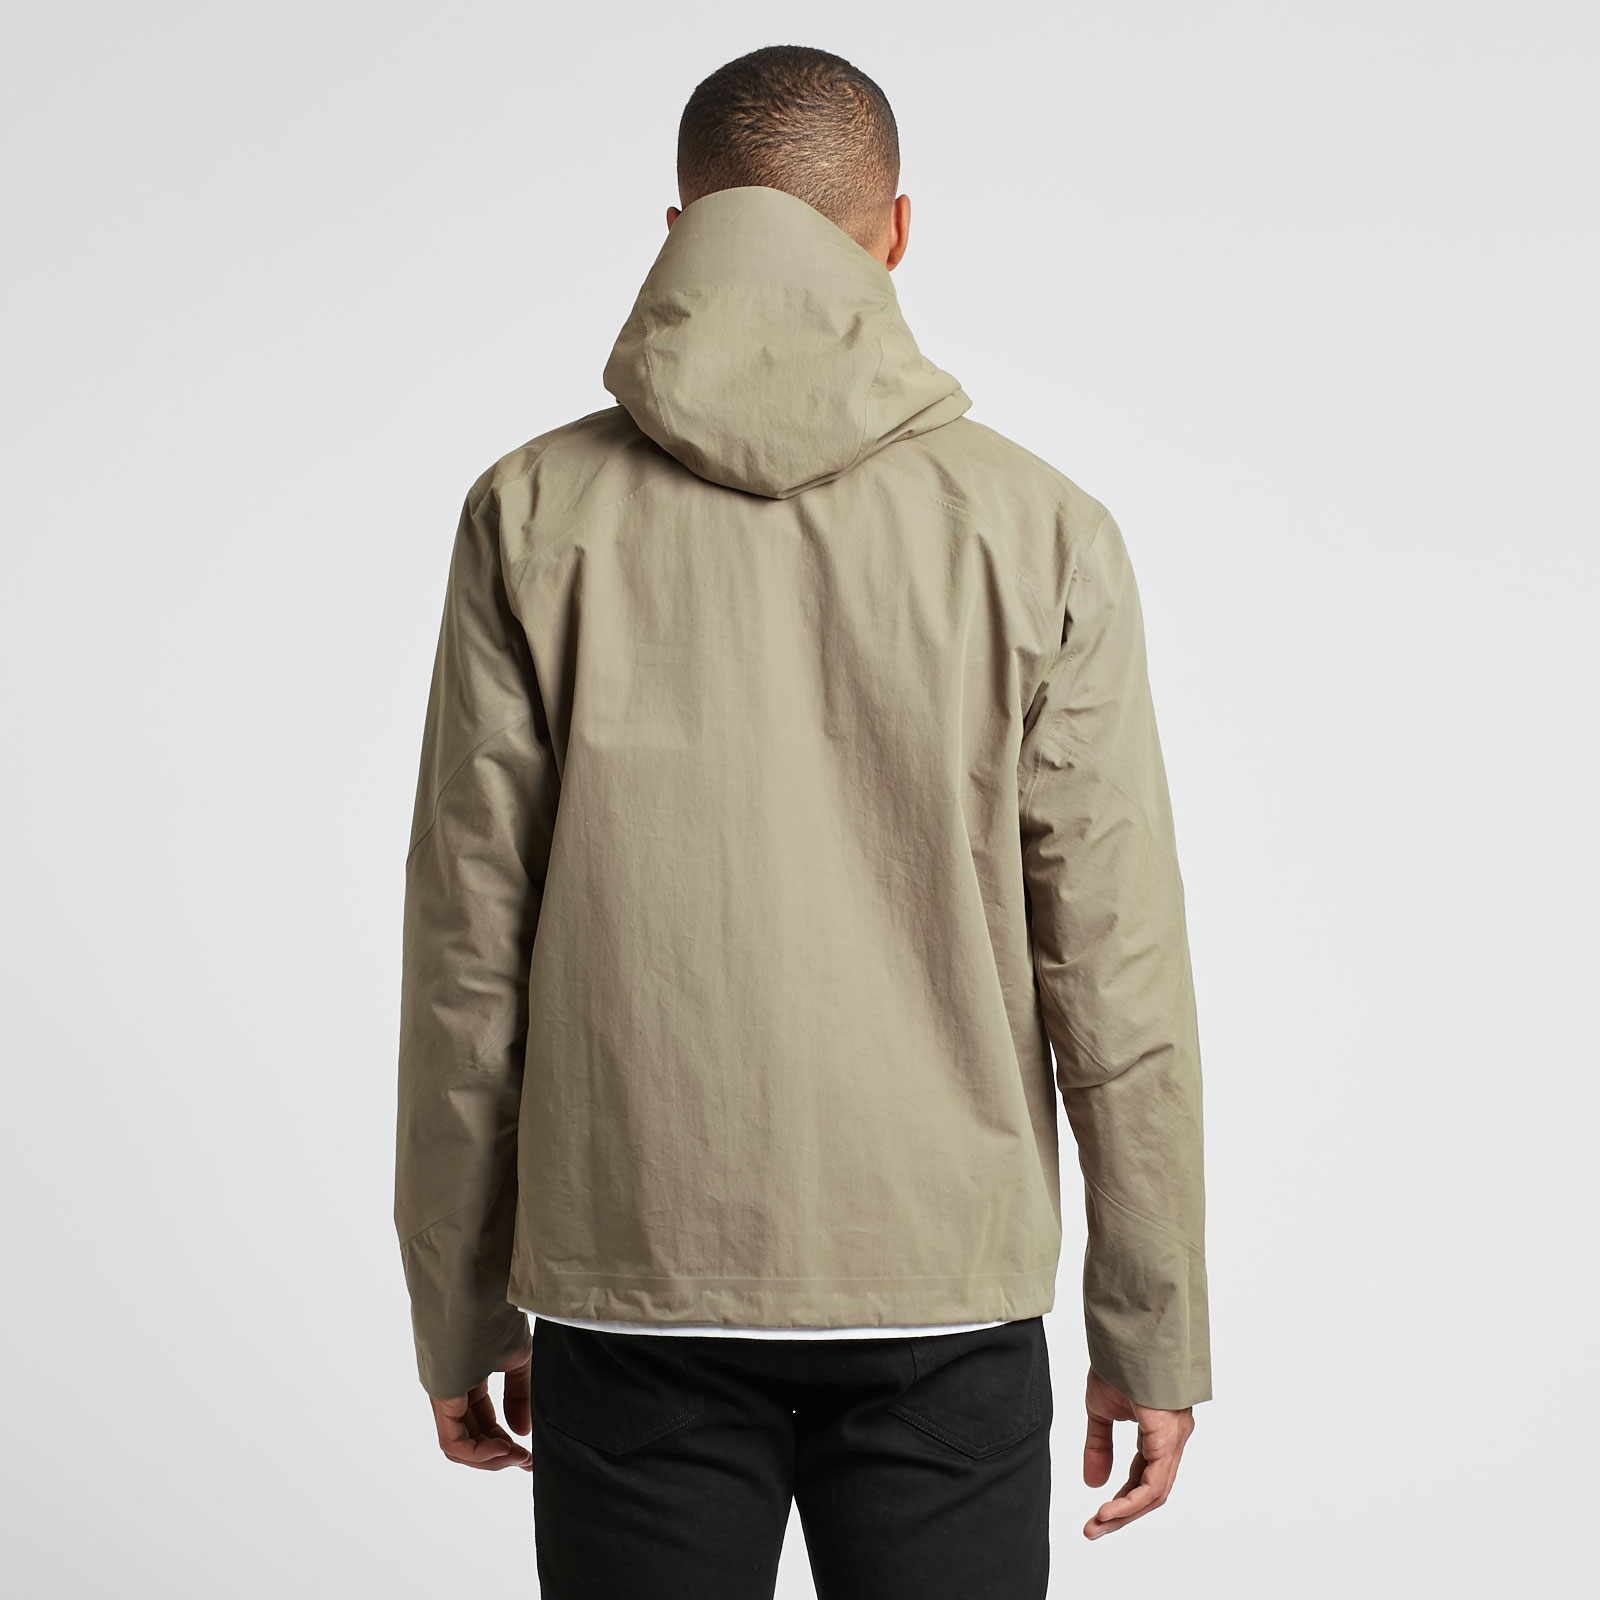 719fe3b9e3cb Arc Teryx Isogon Hooded Jacket - 15643-28861 - Sneakersnstuff ...